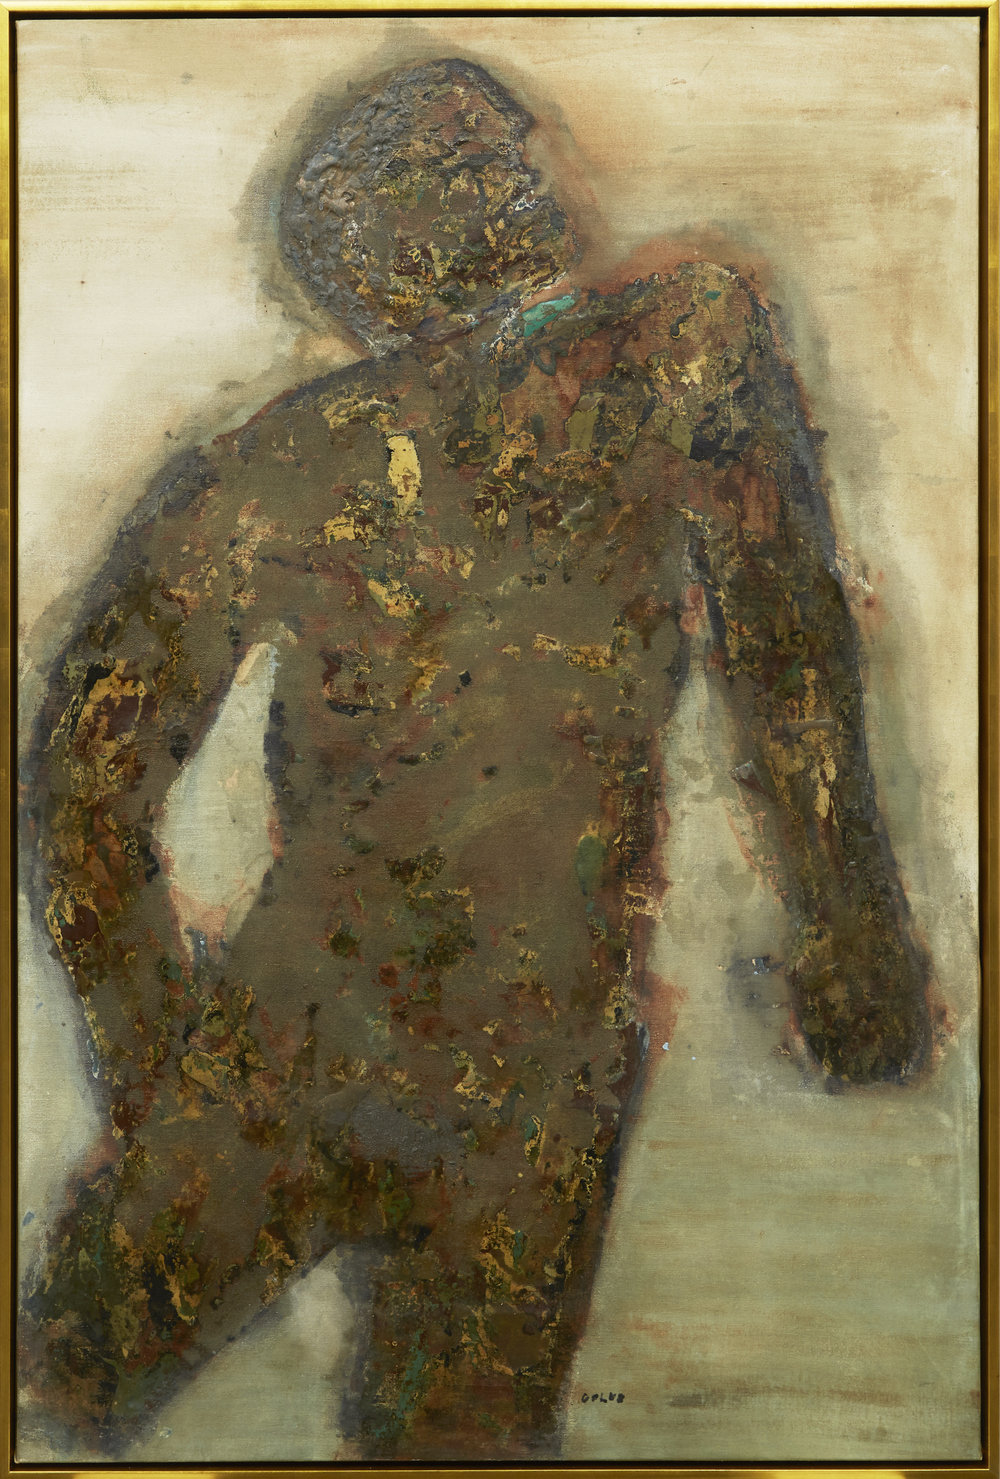 Burnt Man,  Leon Golub, after treatment at The Center.